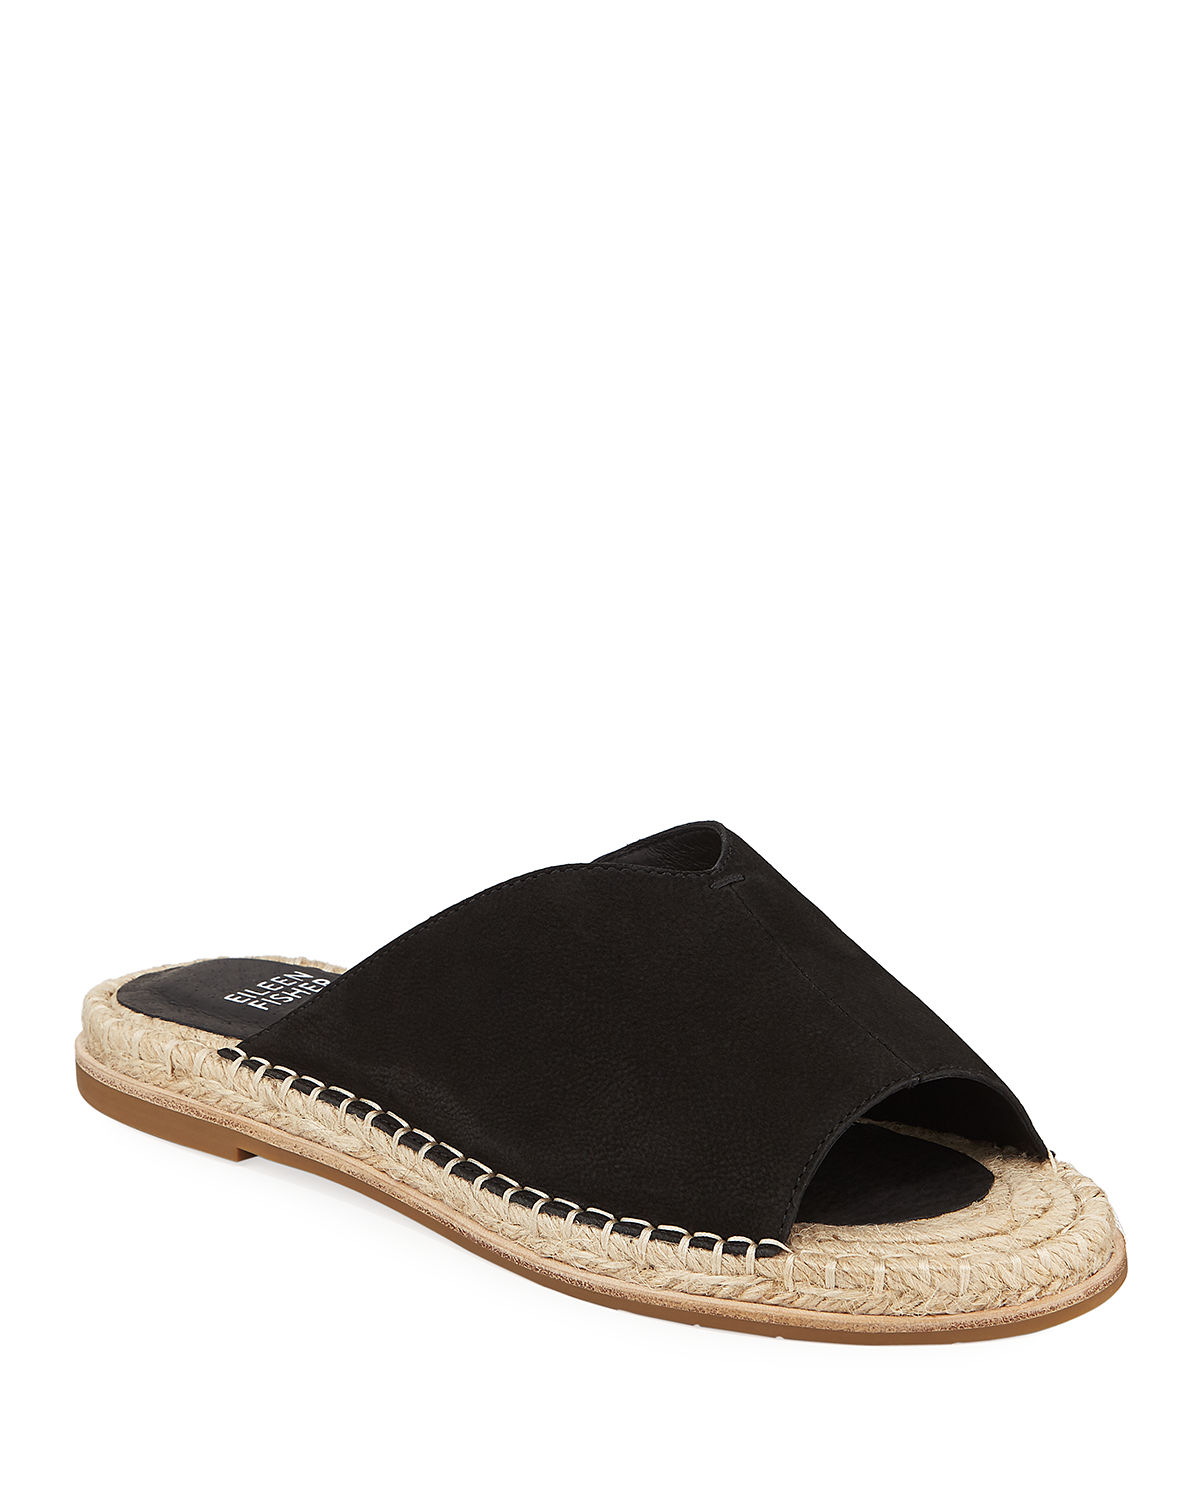 Milly Leather Espadrille Sandals